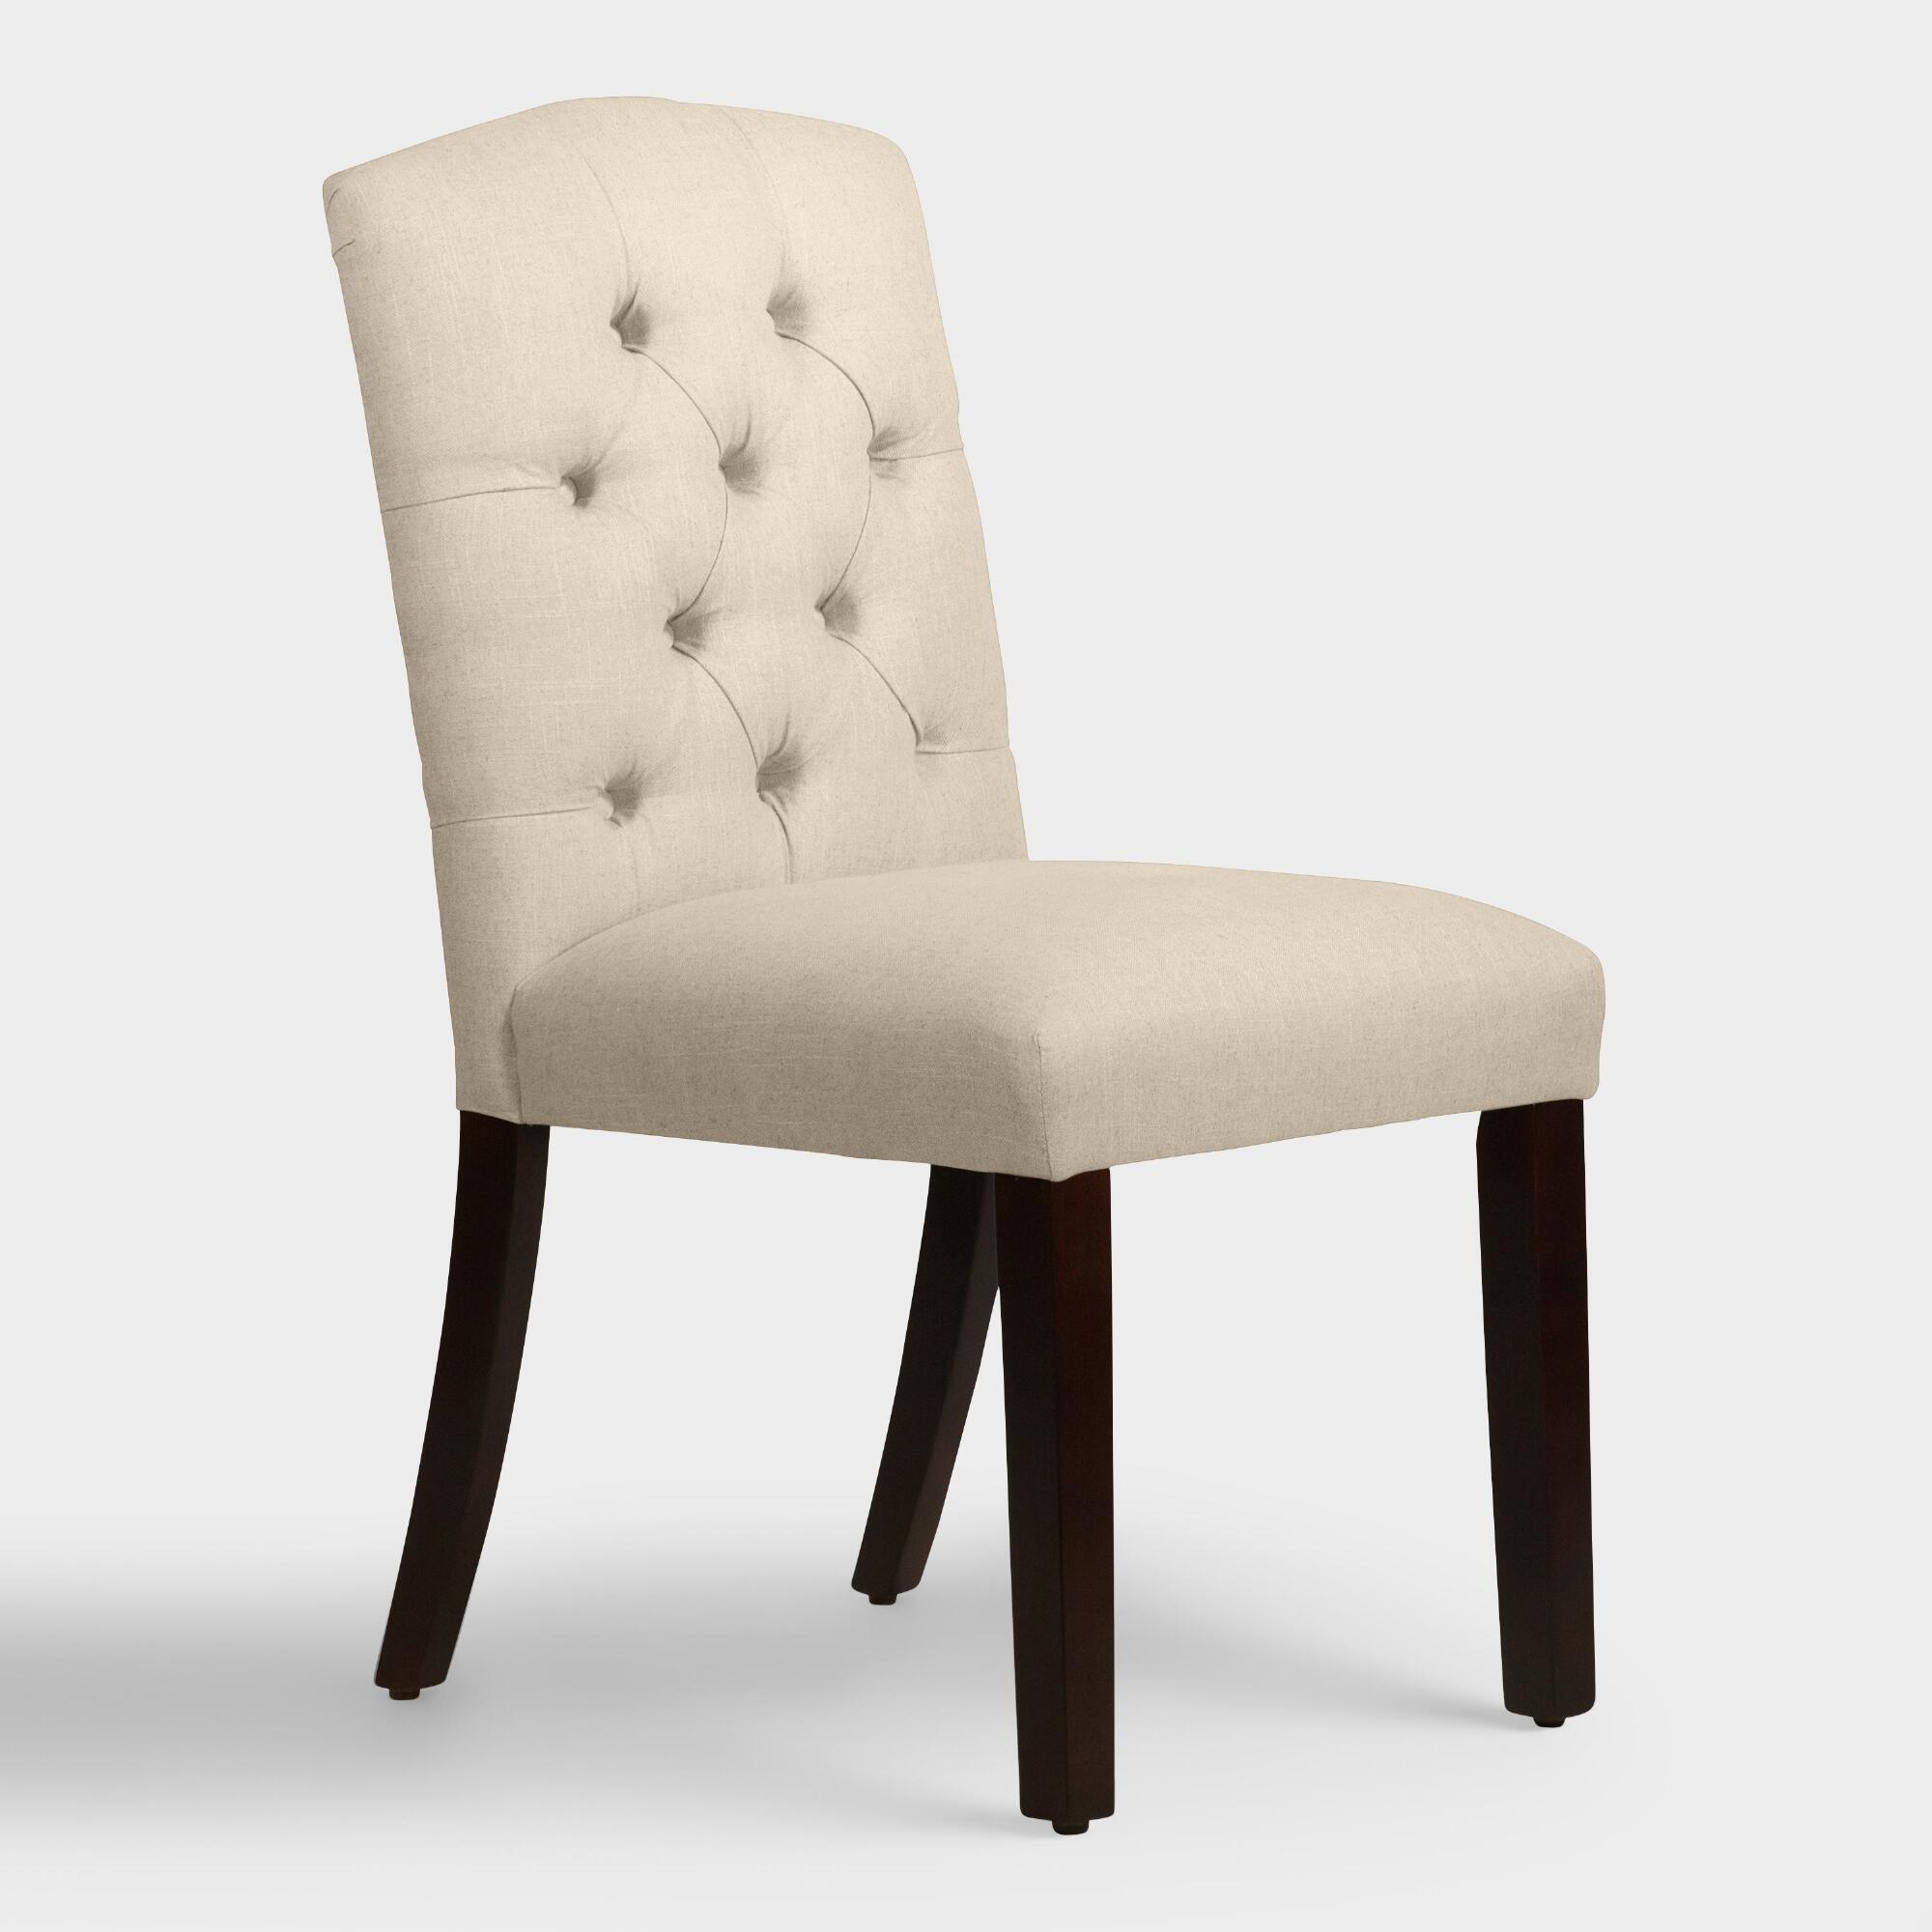 Linen tufted zoey dining chair world market for Tufted dining chairs for sale